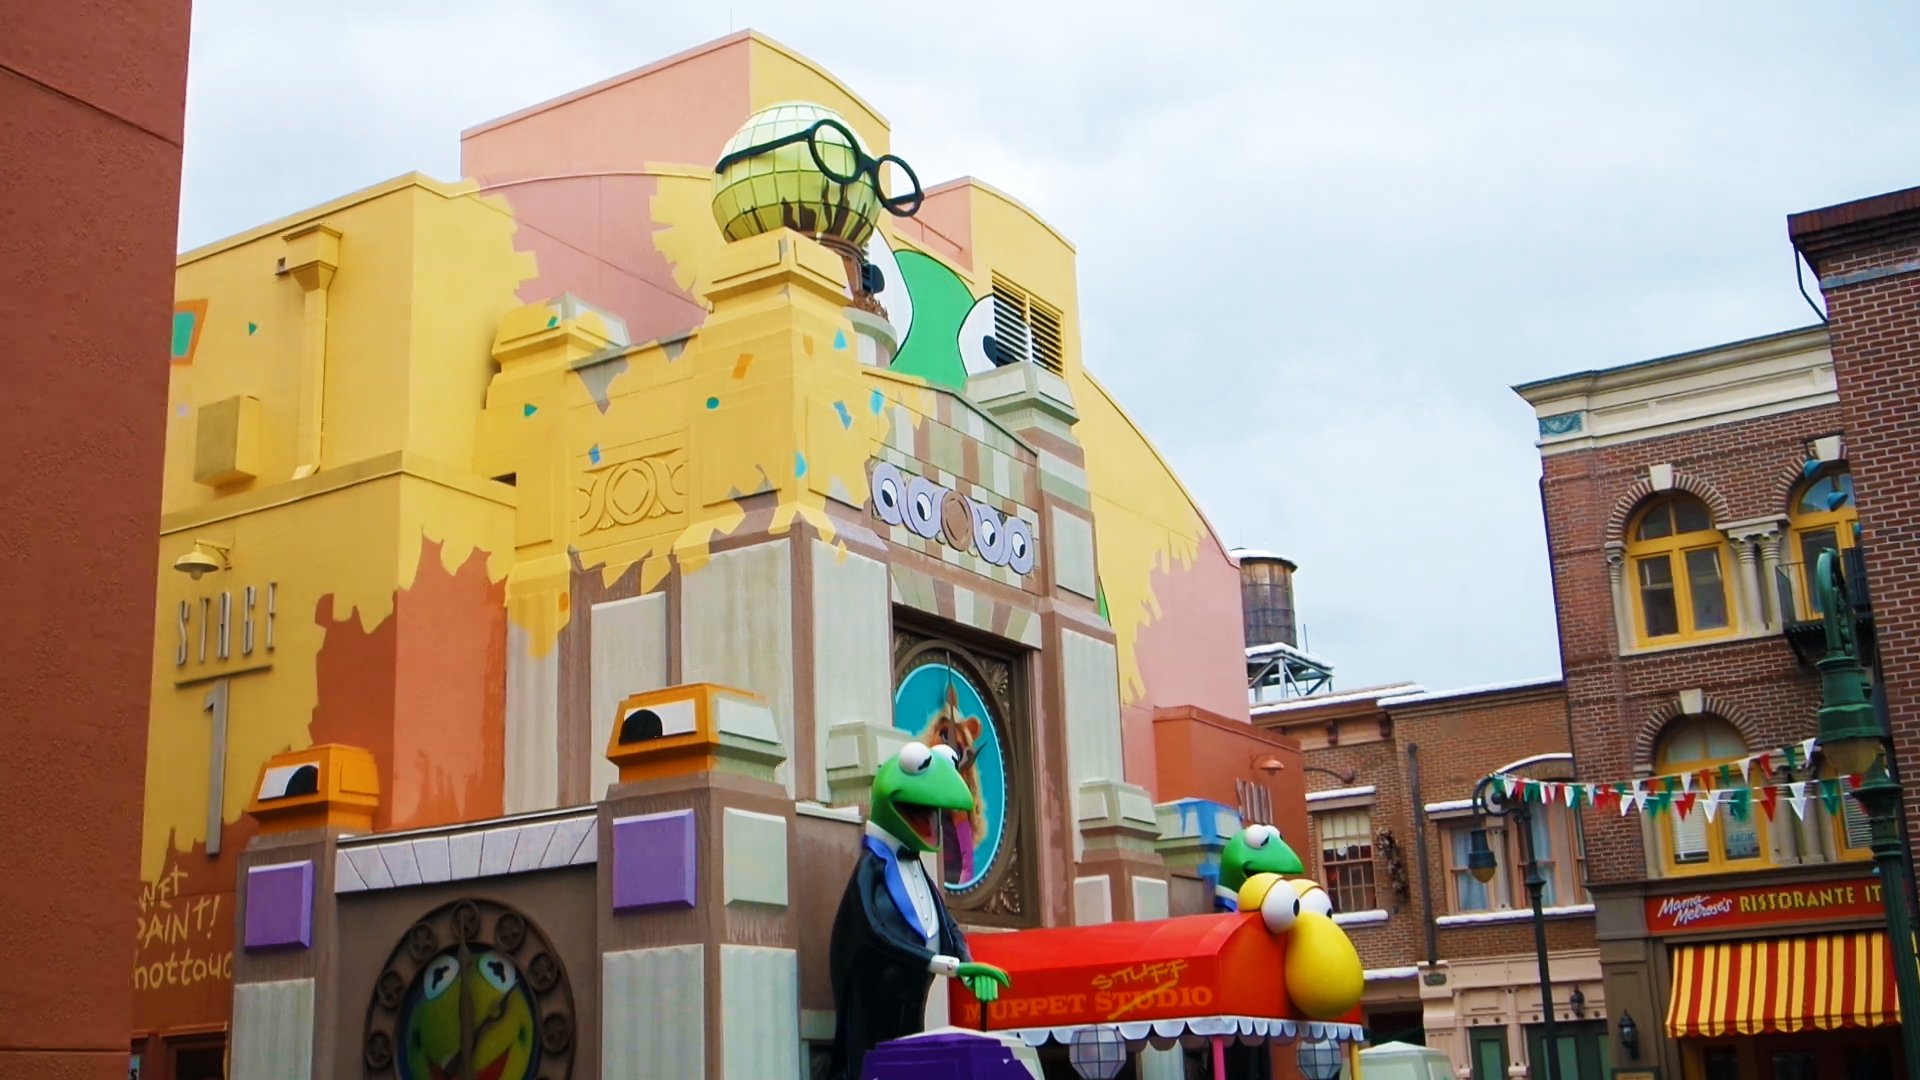 The Muppets are a must see! Even if you aren't really into the Muppets.